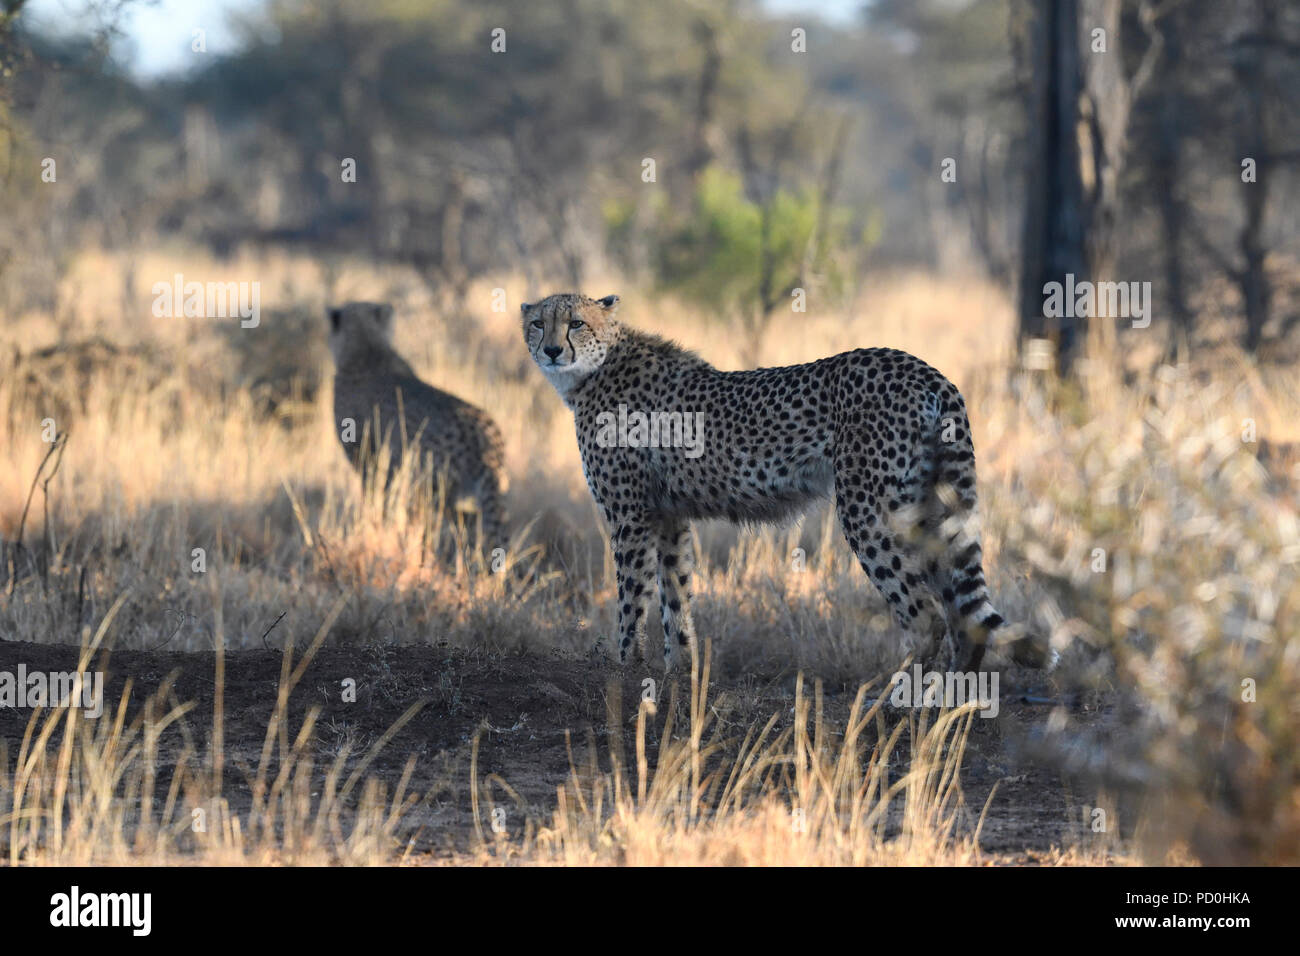 South Africa, a fantastic travel destination to experience third and first world together. Male cheetah on the hunt in burnt grass. Kruger Park. - Stock Image